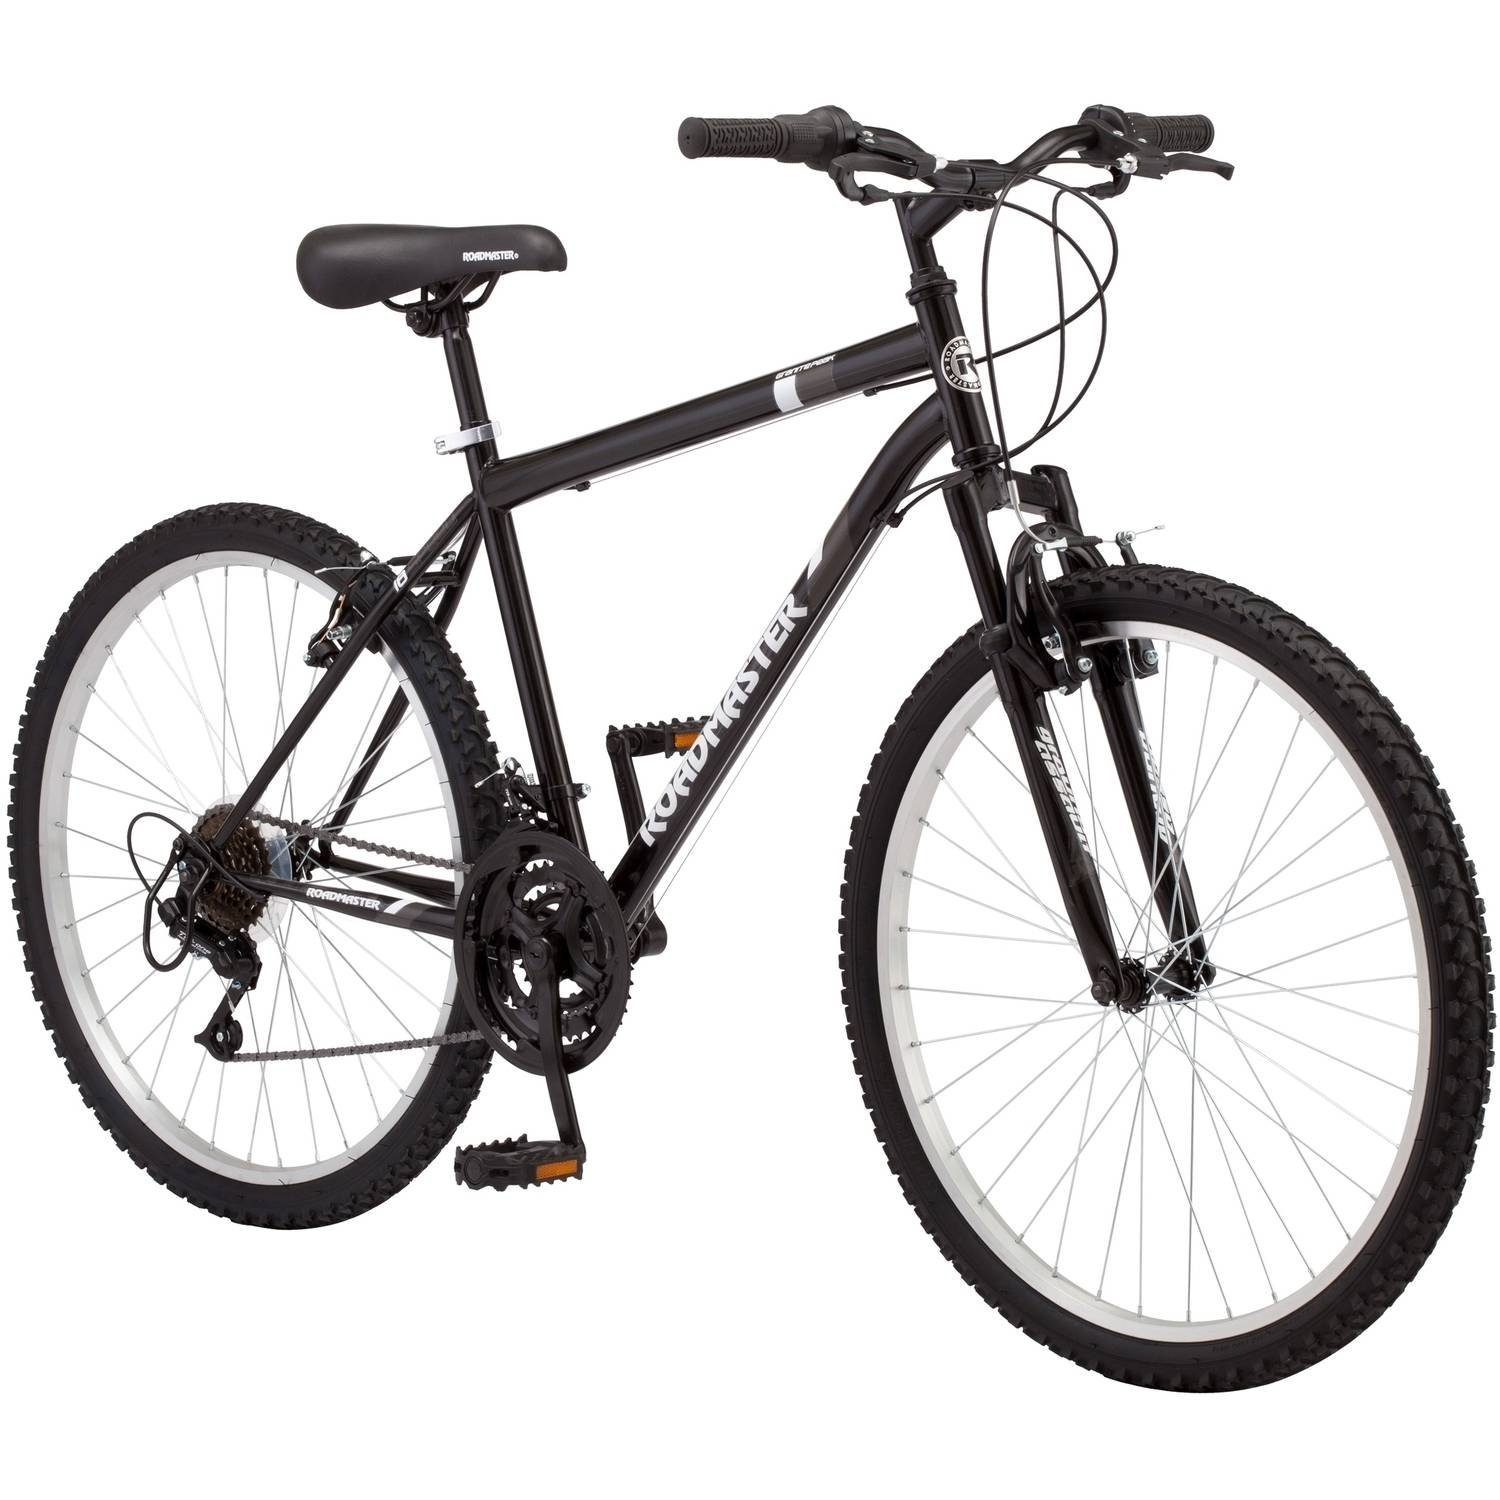 Roadmaster - 26 Inches Granite Peak Men's Mountain Bike, NAVY